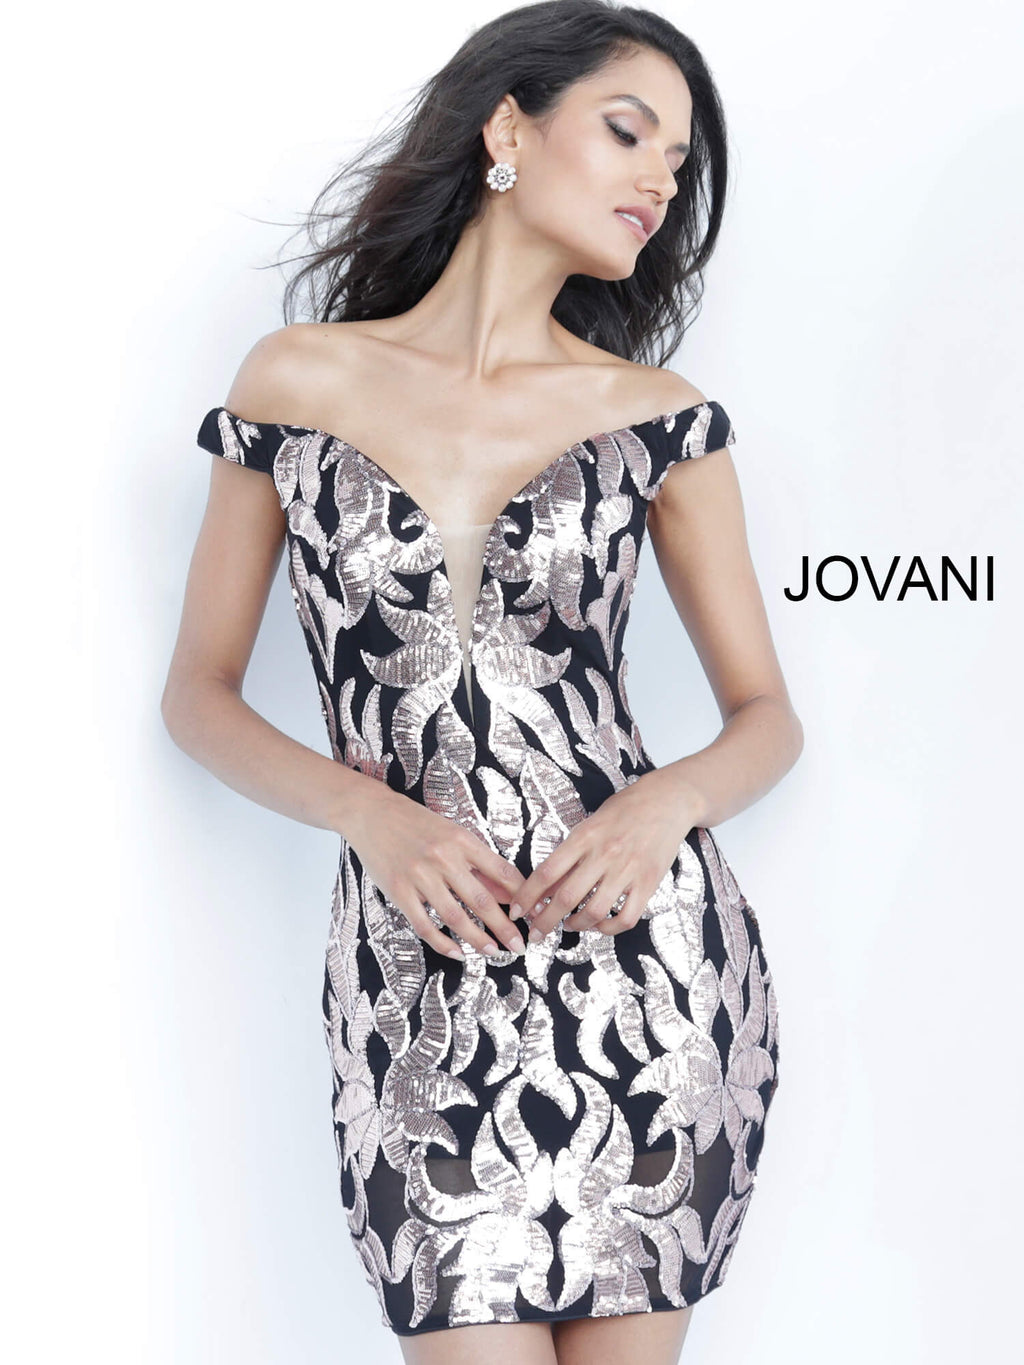 JOVANI 8004 Off Shoulder Cocktail Dress - CYC Boutique